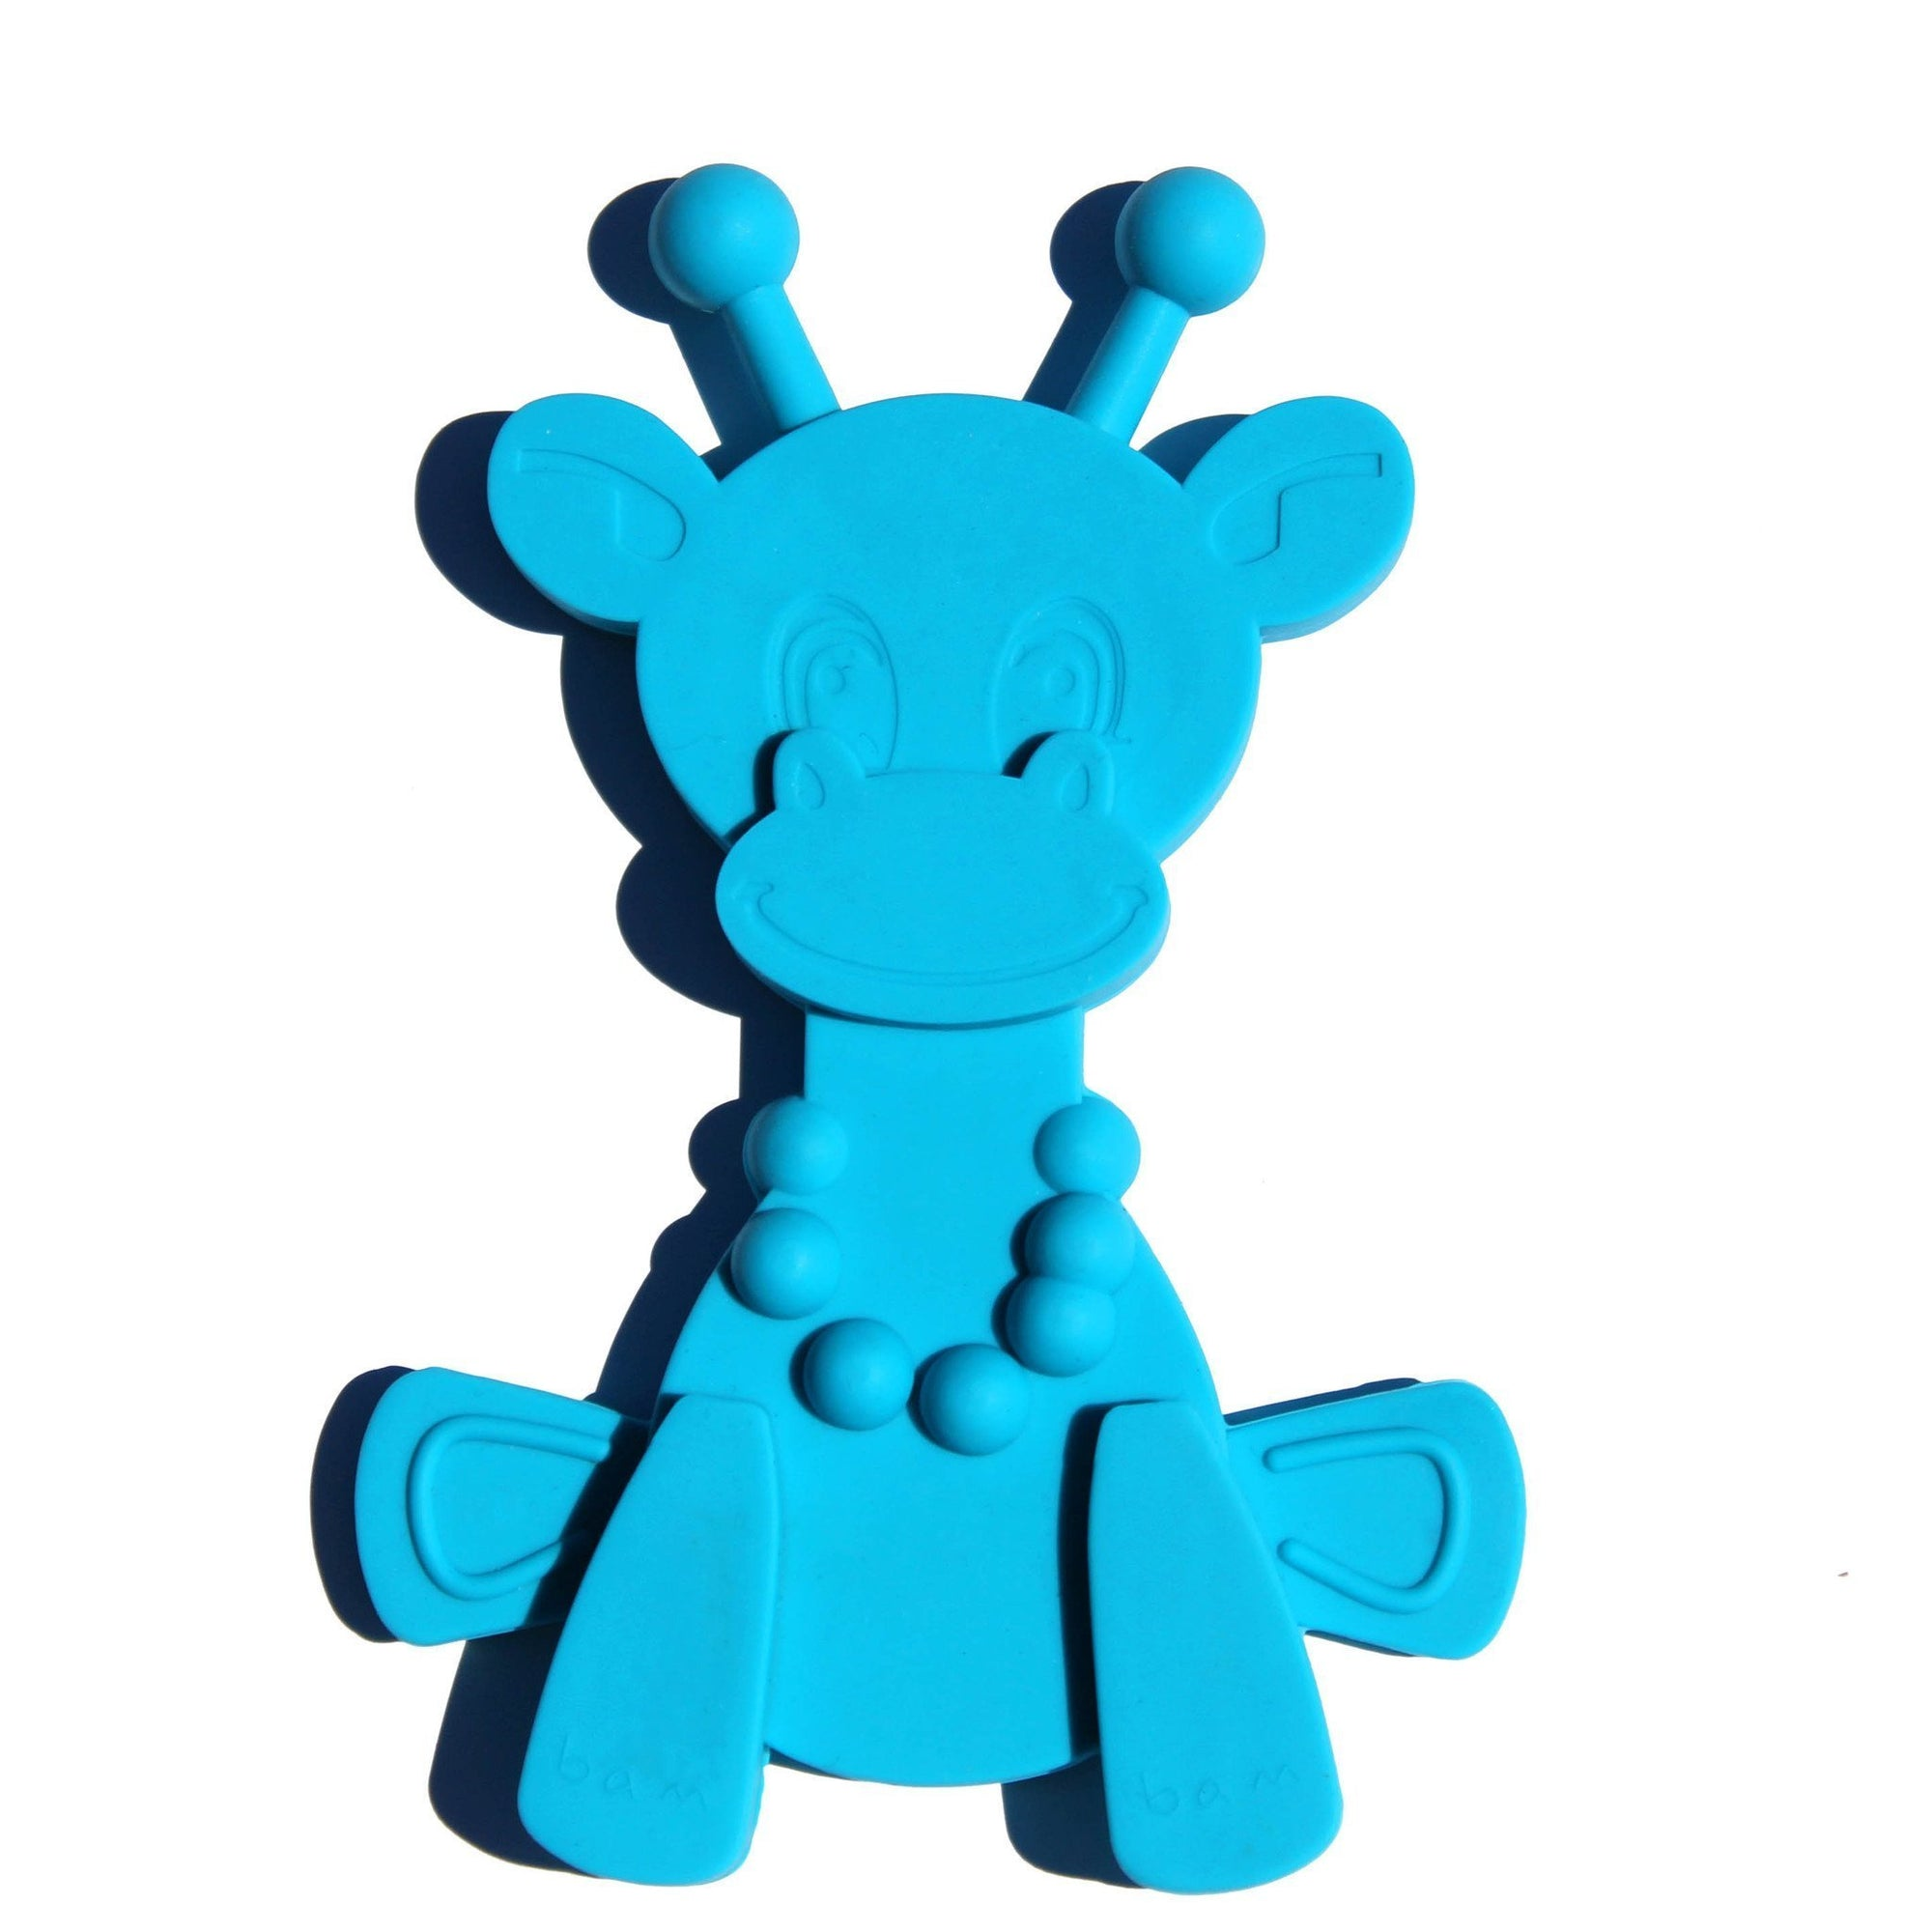 Cyan Bambeado Little Bam Bam My First Teething Toy - Naked Baby Eco Boutique